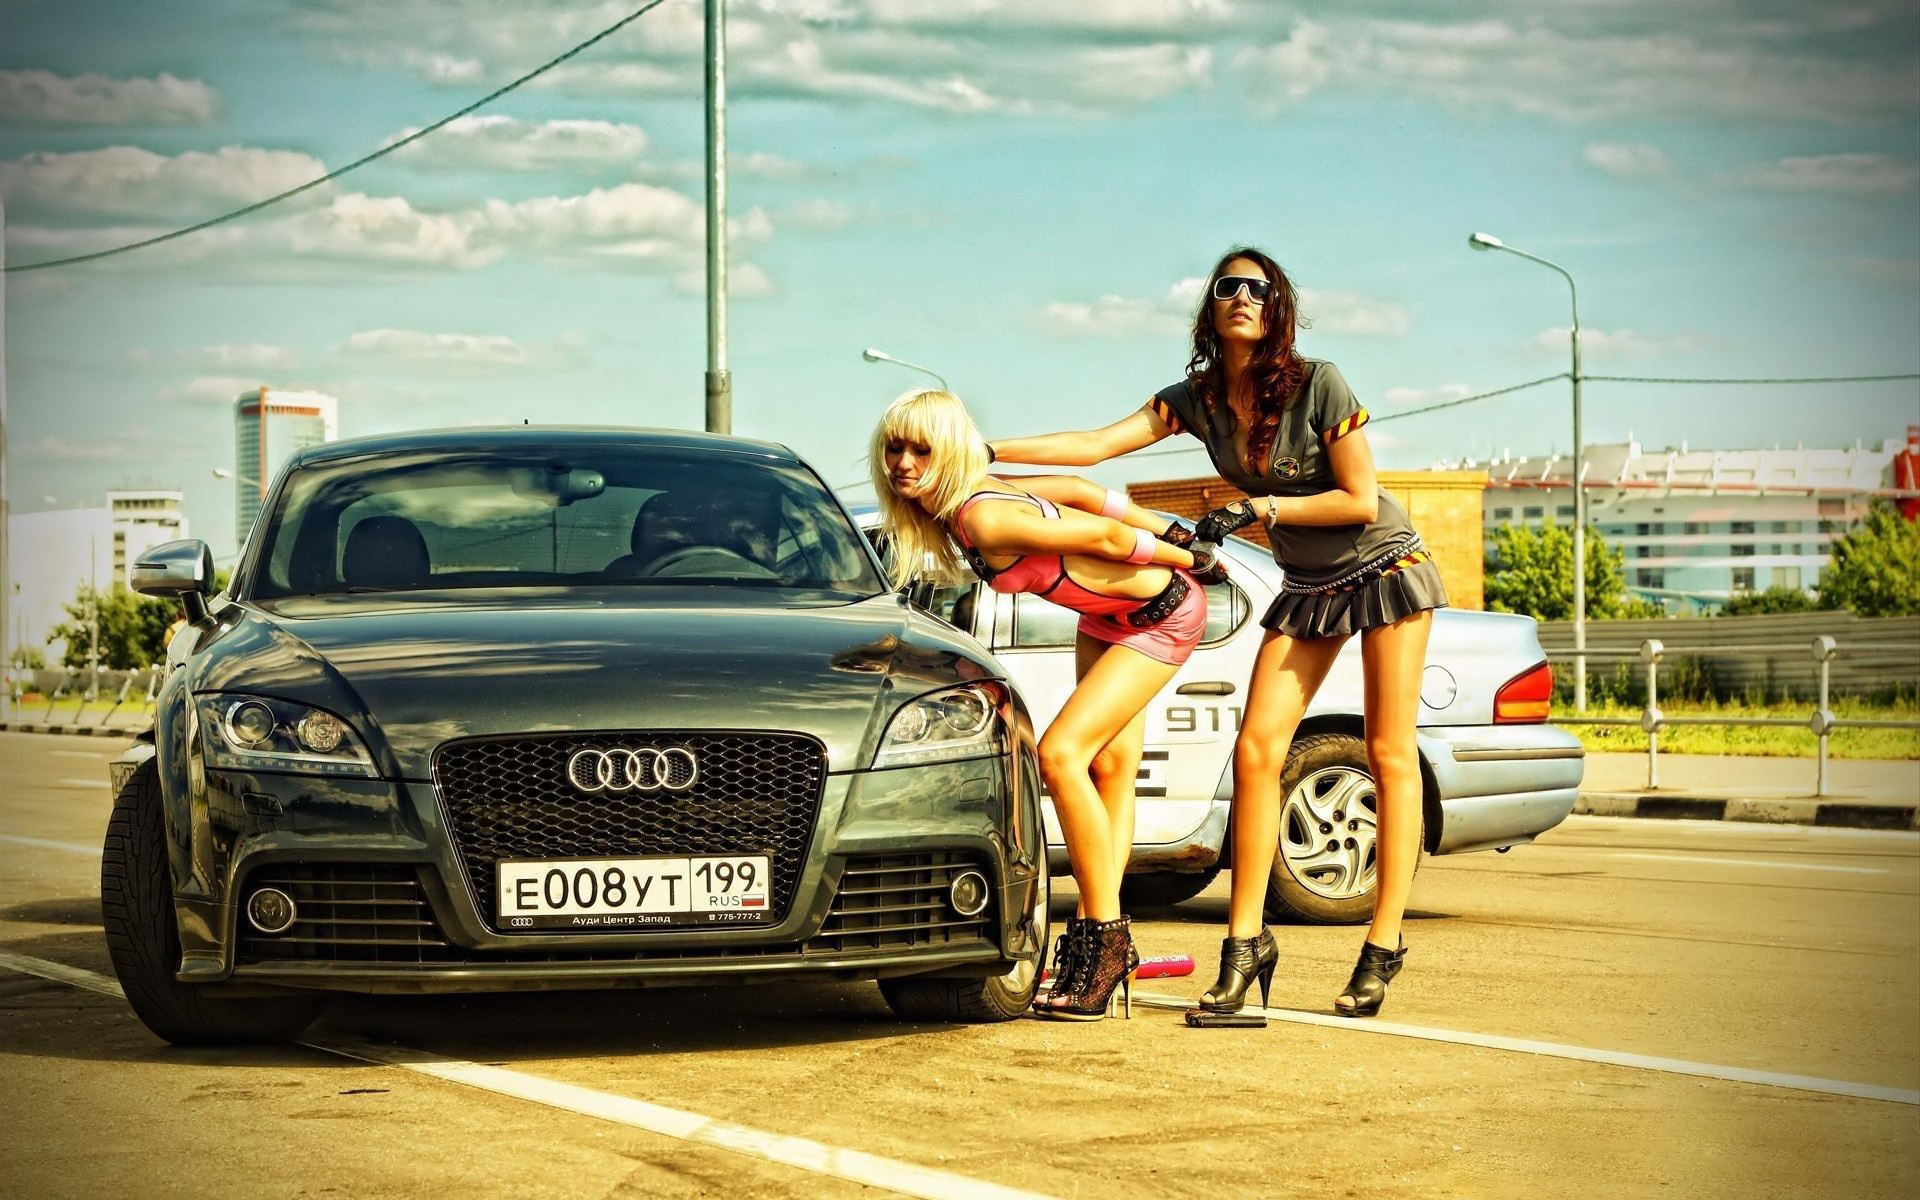 Girls And Cars Wallpapers 5 Automotive Century